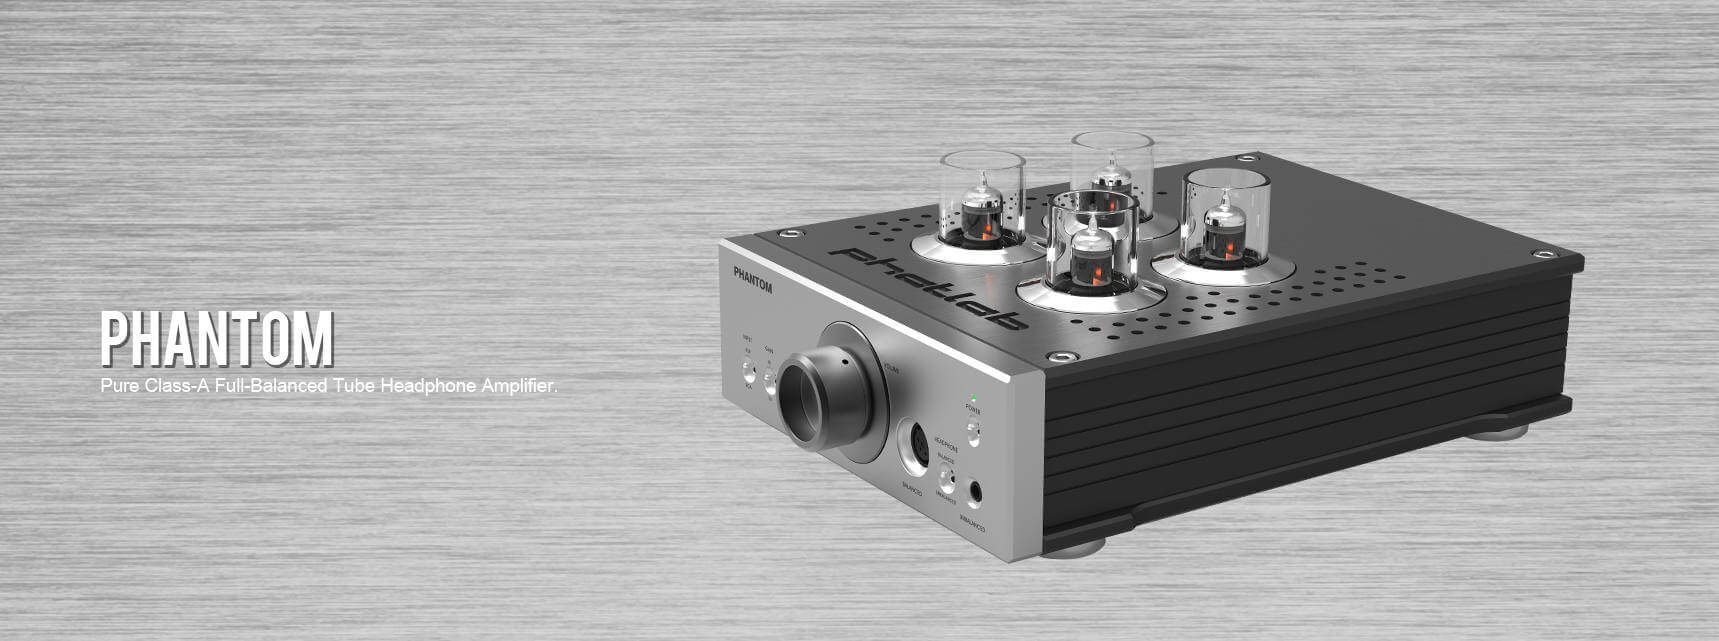 Phatlab Headphone Class A Amplifier Build Fully Balanced Tube From Ground Up